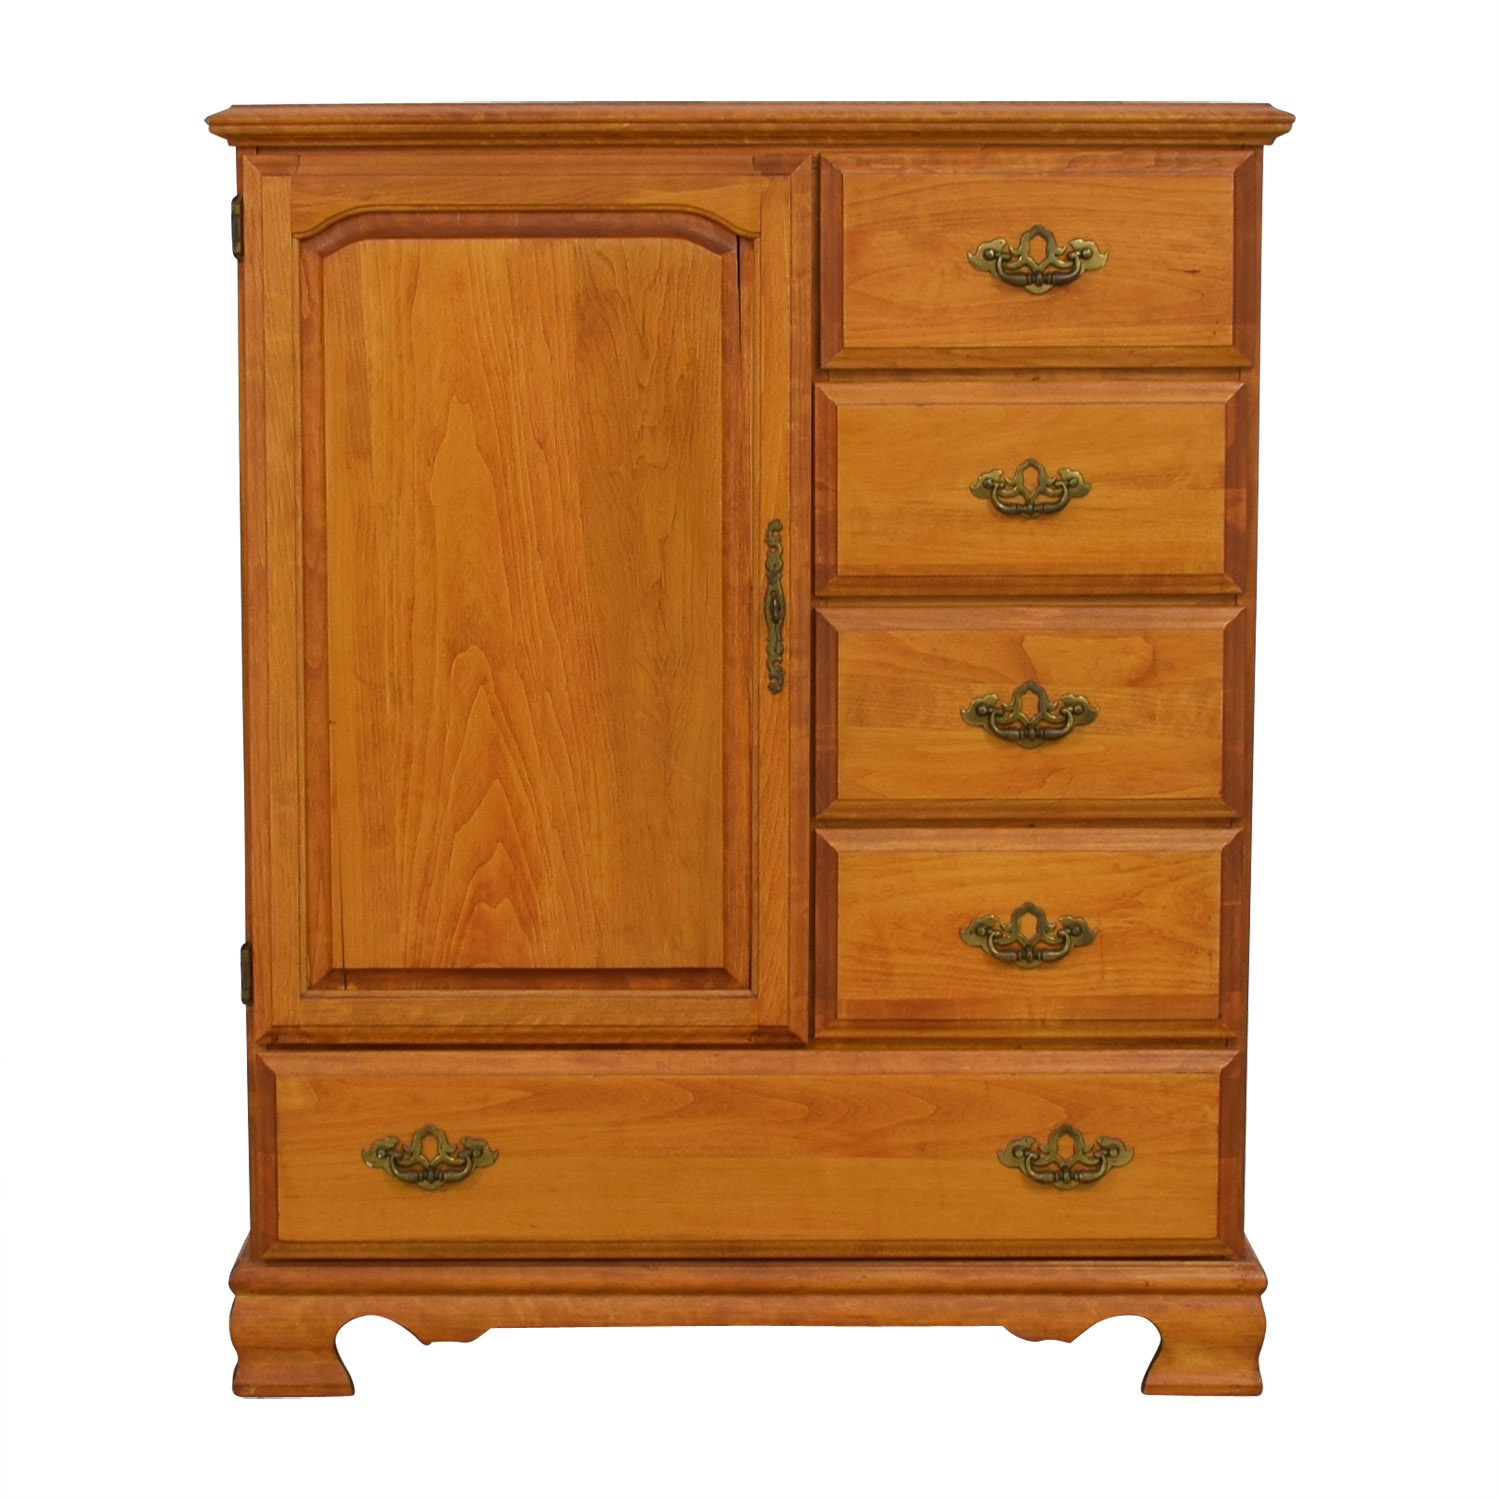 Five-Drawer Wood Dresser Armoire for sale